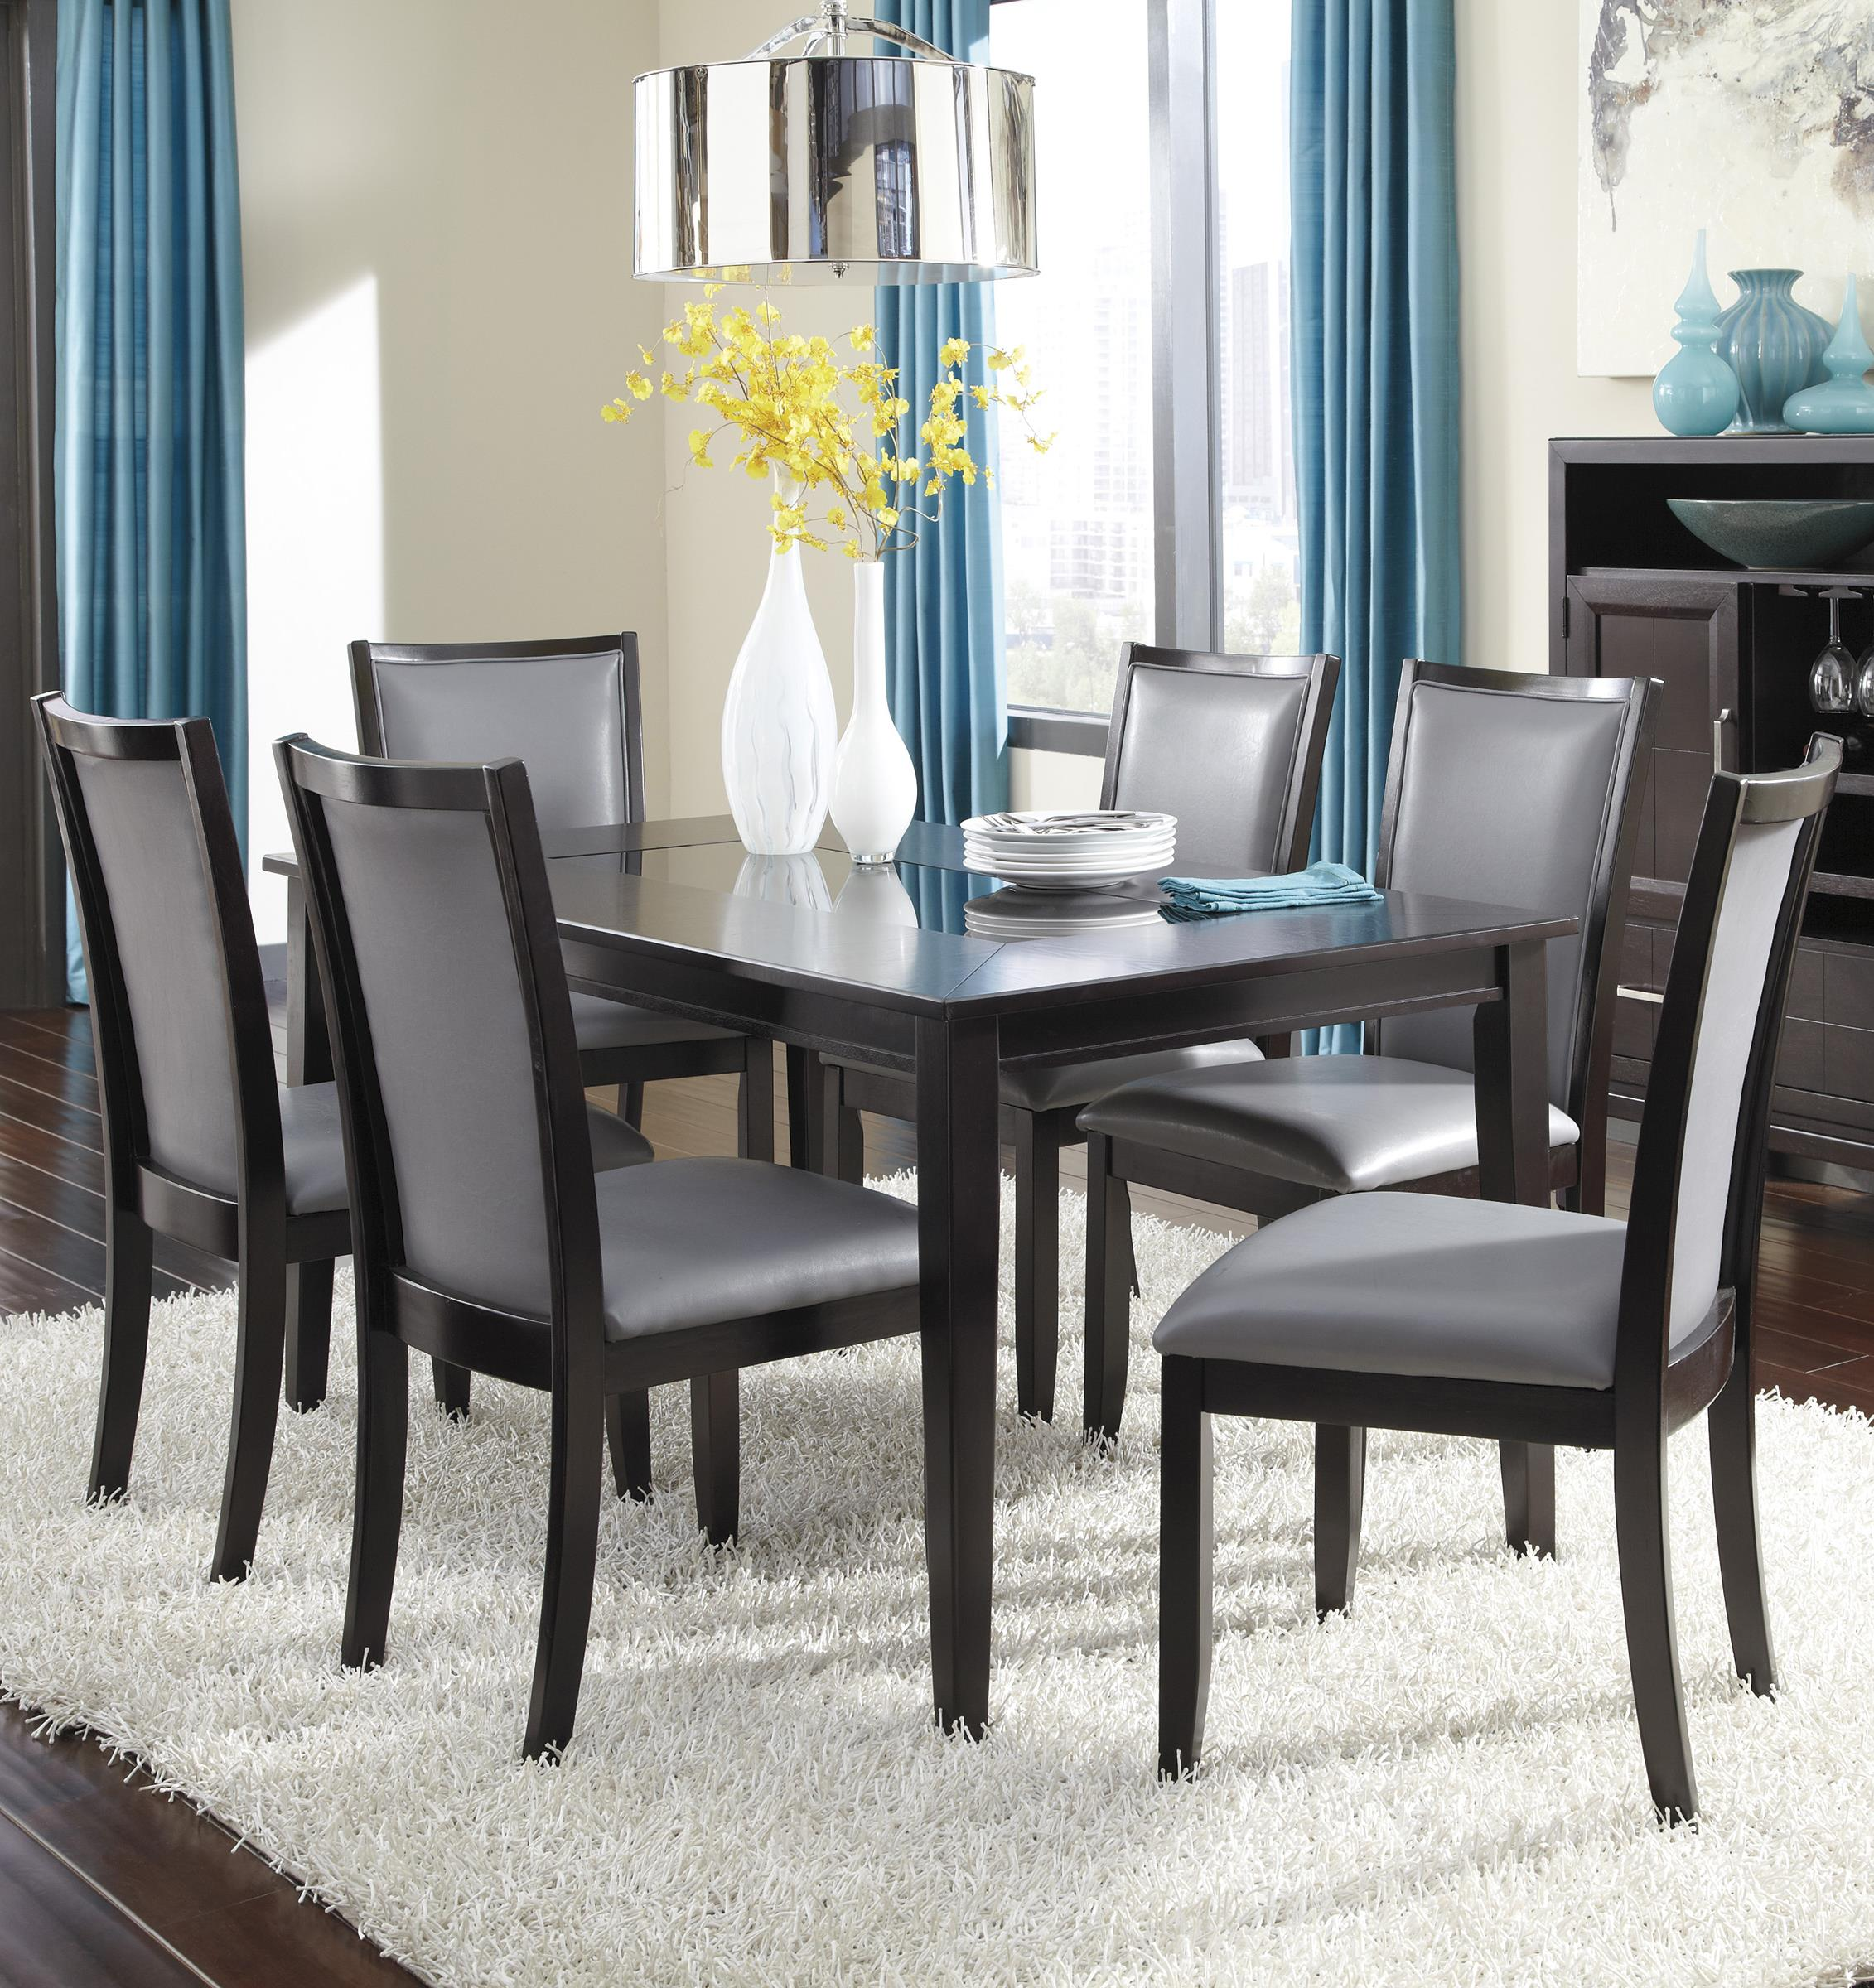 Ashley Furniture Trishelle 7-Piece Rectangular Dining Table Set - Item Number: D550-25+6x05